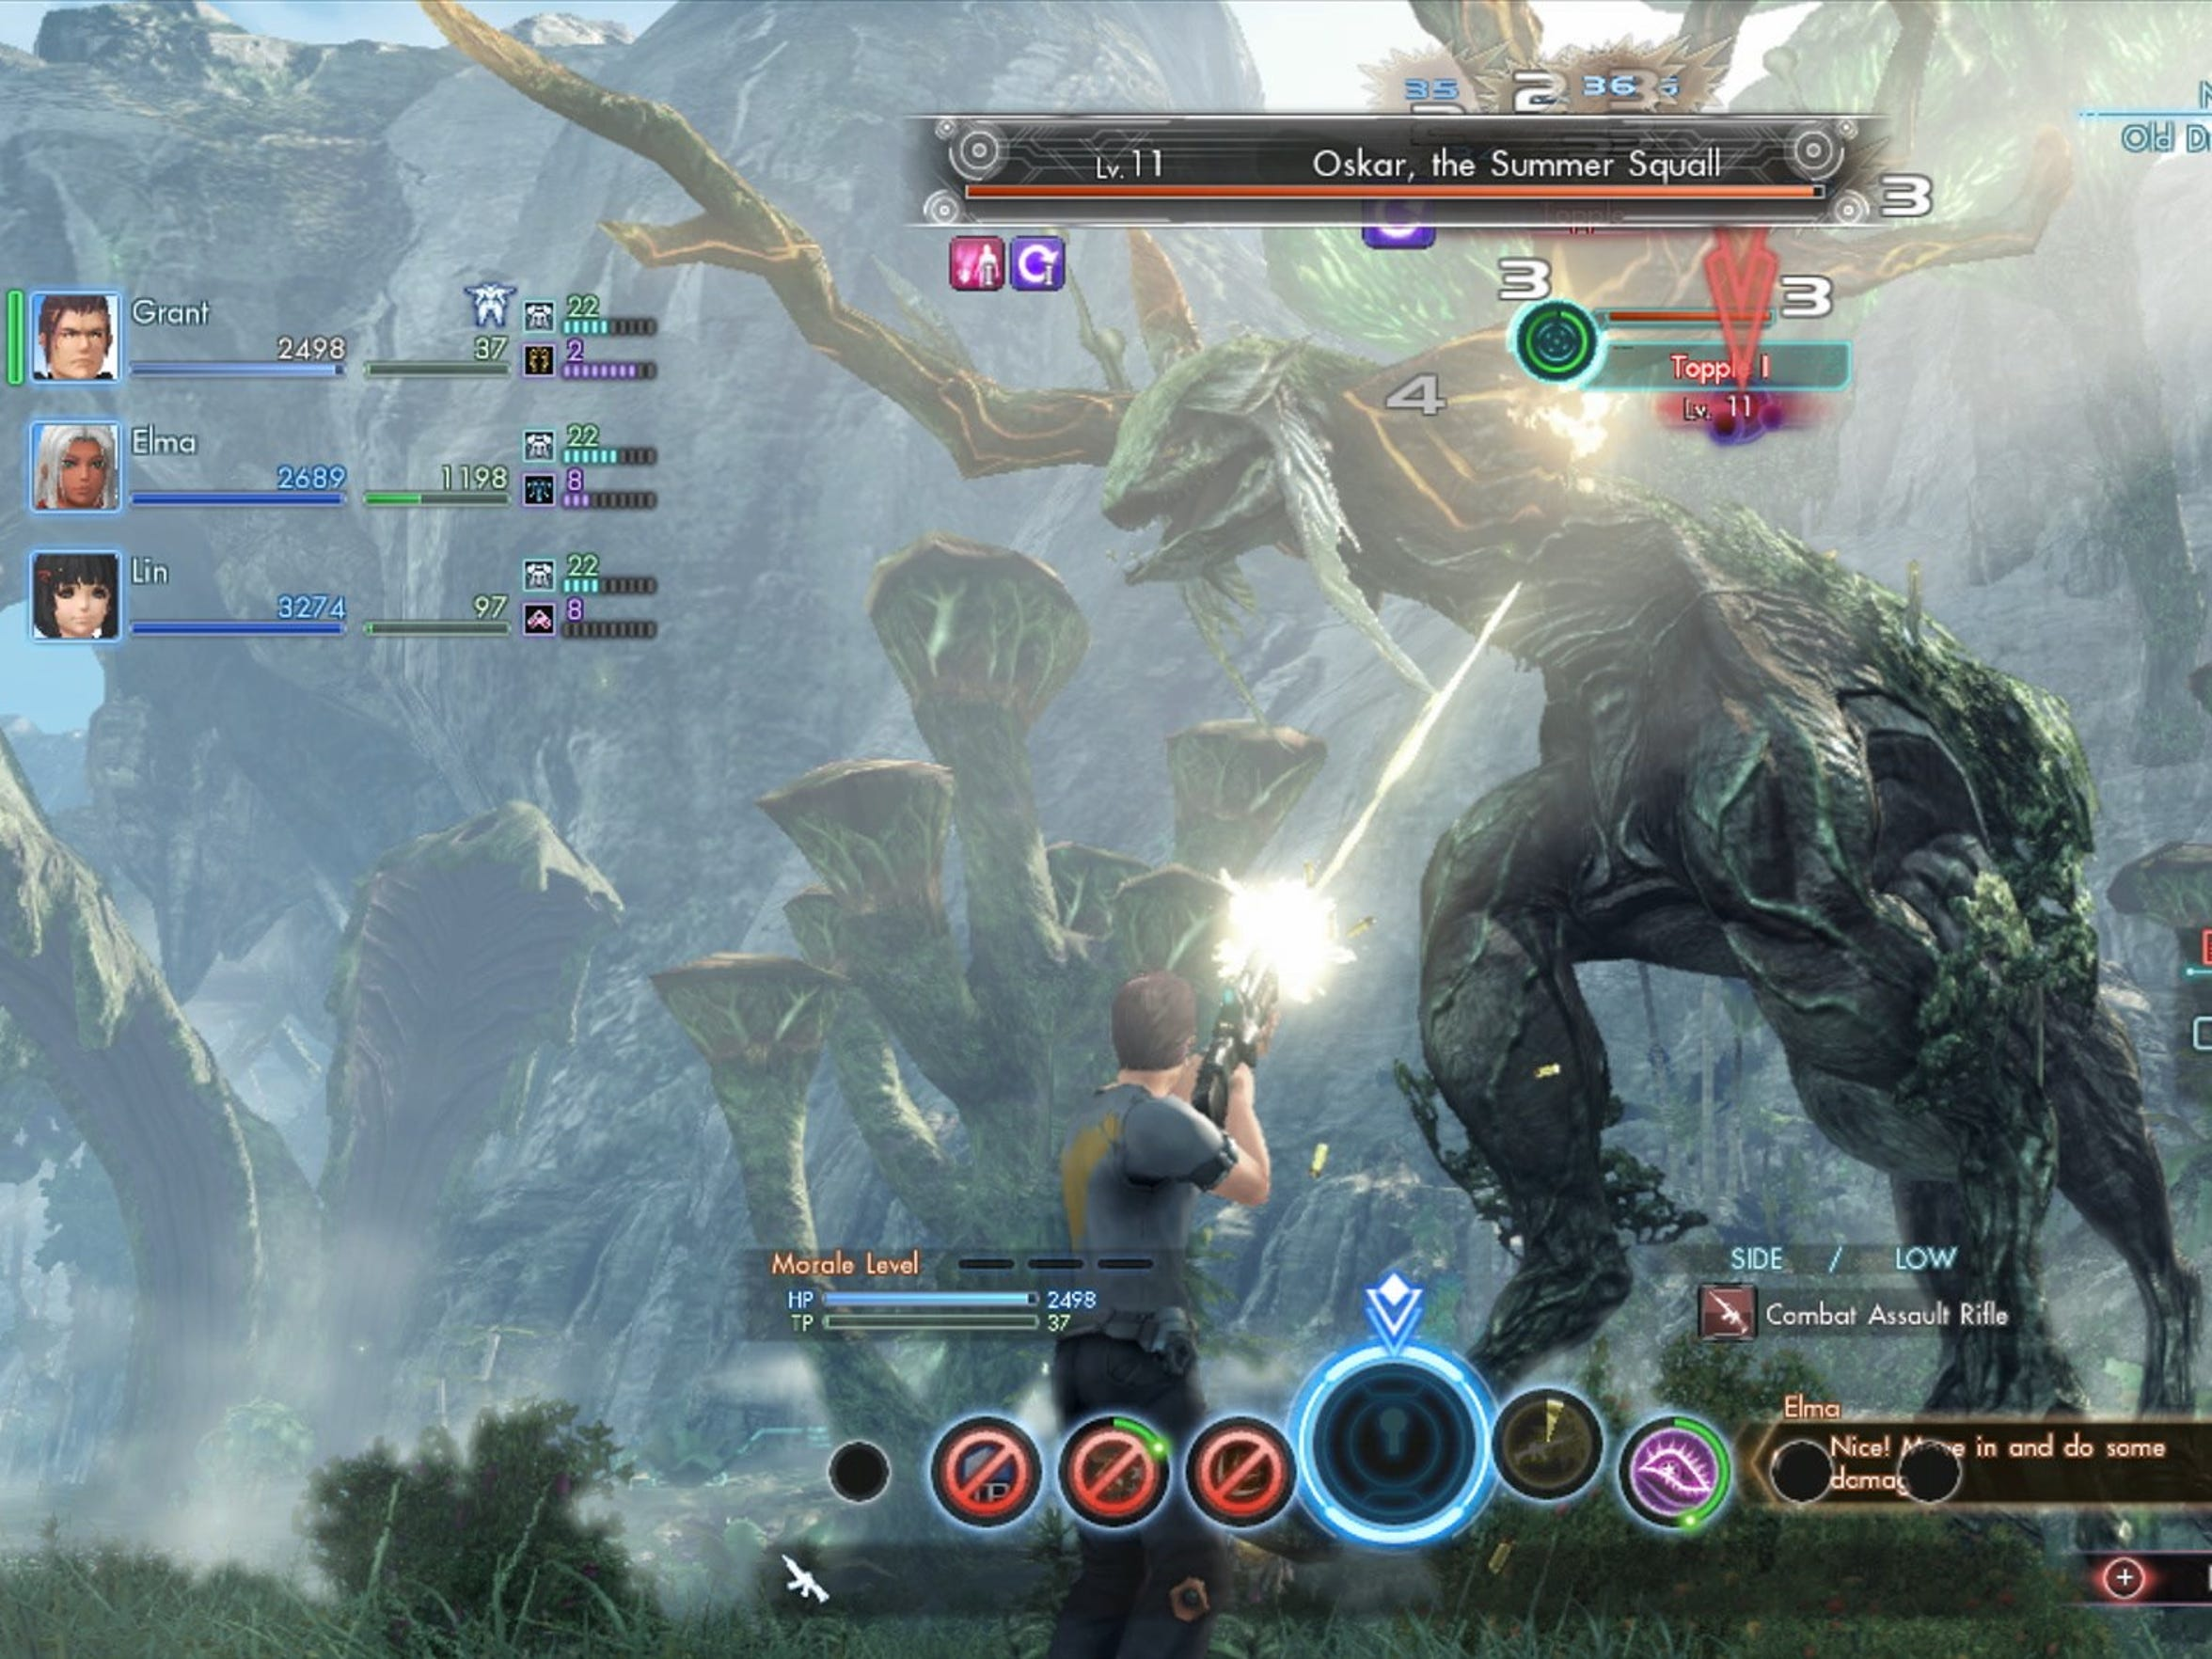 Gun and blade battles with large monsters is par for the course in Xenoblade Chronicles X.